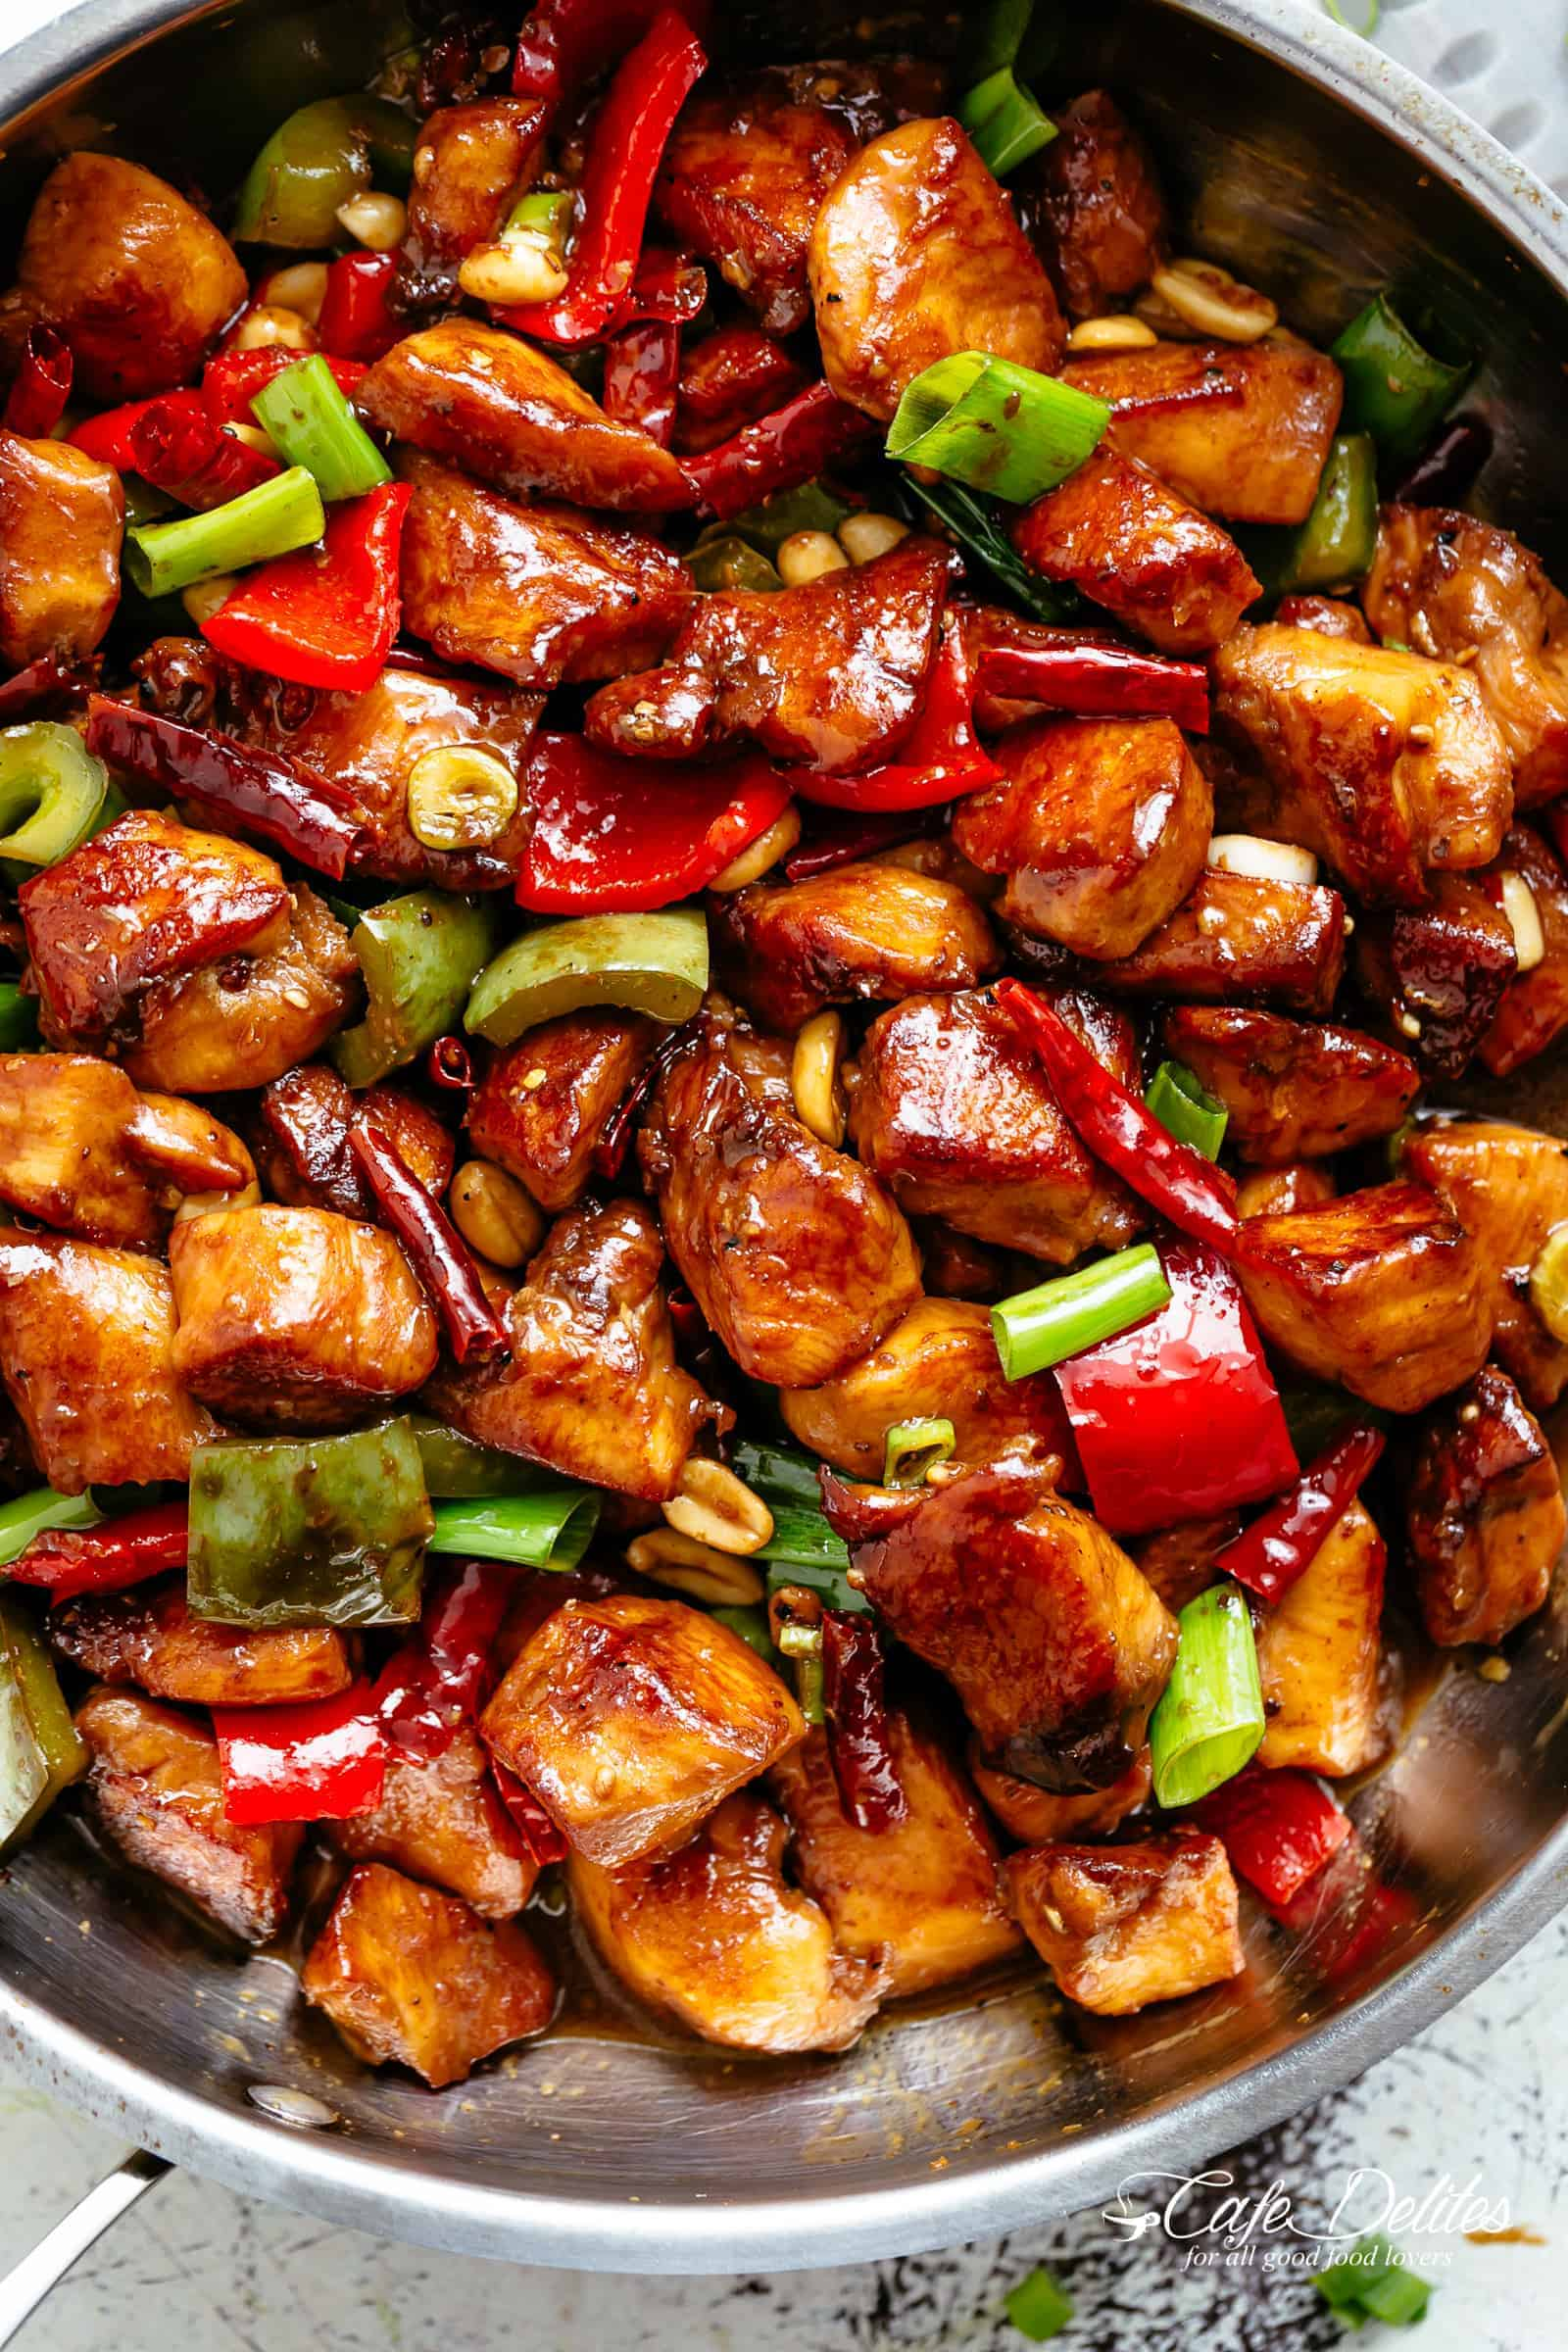 Kung Pao Chicken is highly addictive stir-fried chicken with the perfect combination of salty, sweet and spicy flavour! Make it better than Chinese take out right at home! With crisp-tender chicken pieces and some crunchy veggies thrown in, this is one Kung Pao chicken recipe hard to pass up!  | cafedelites.com